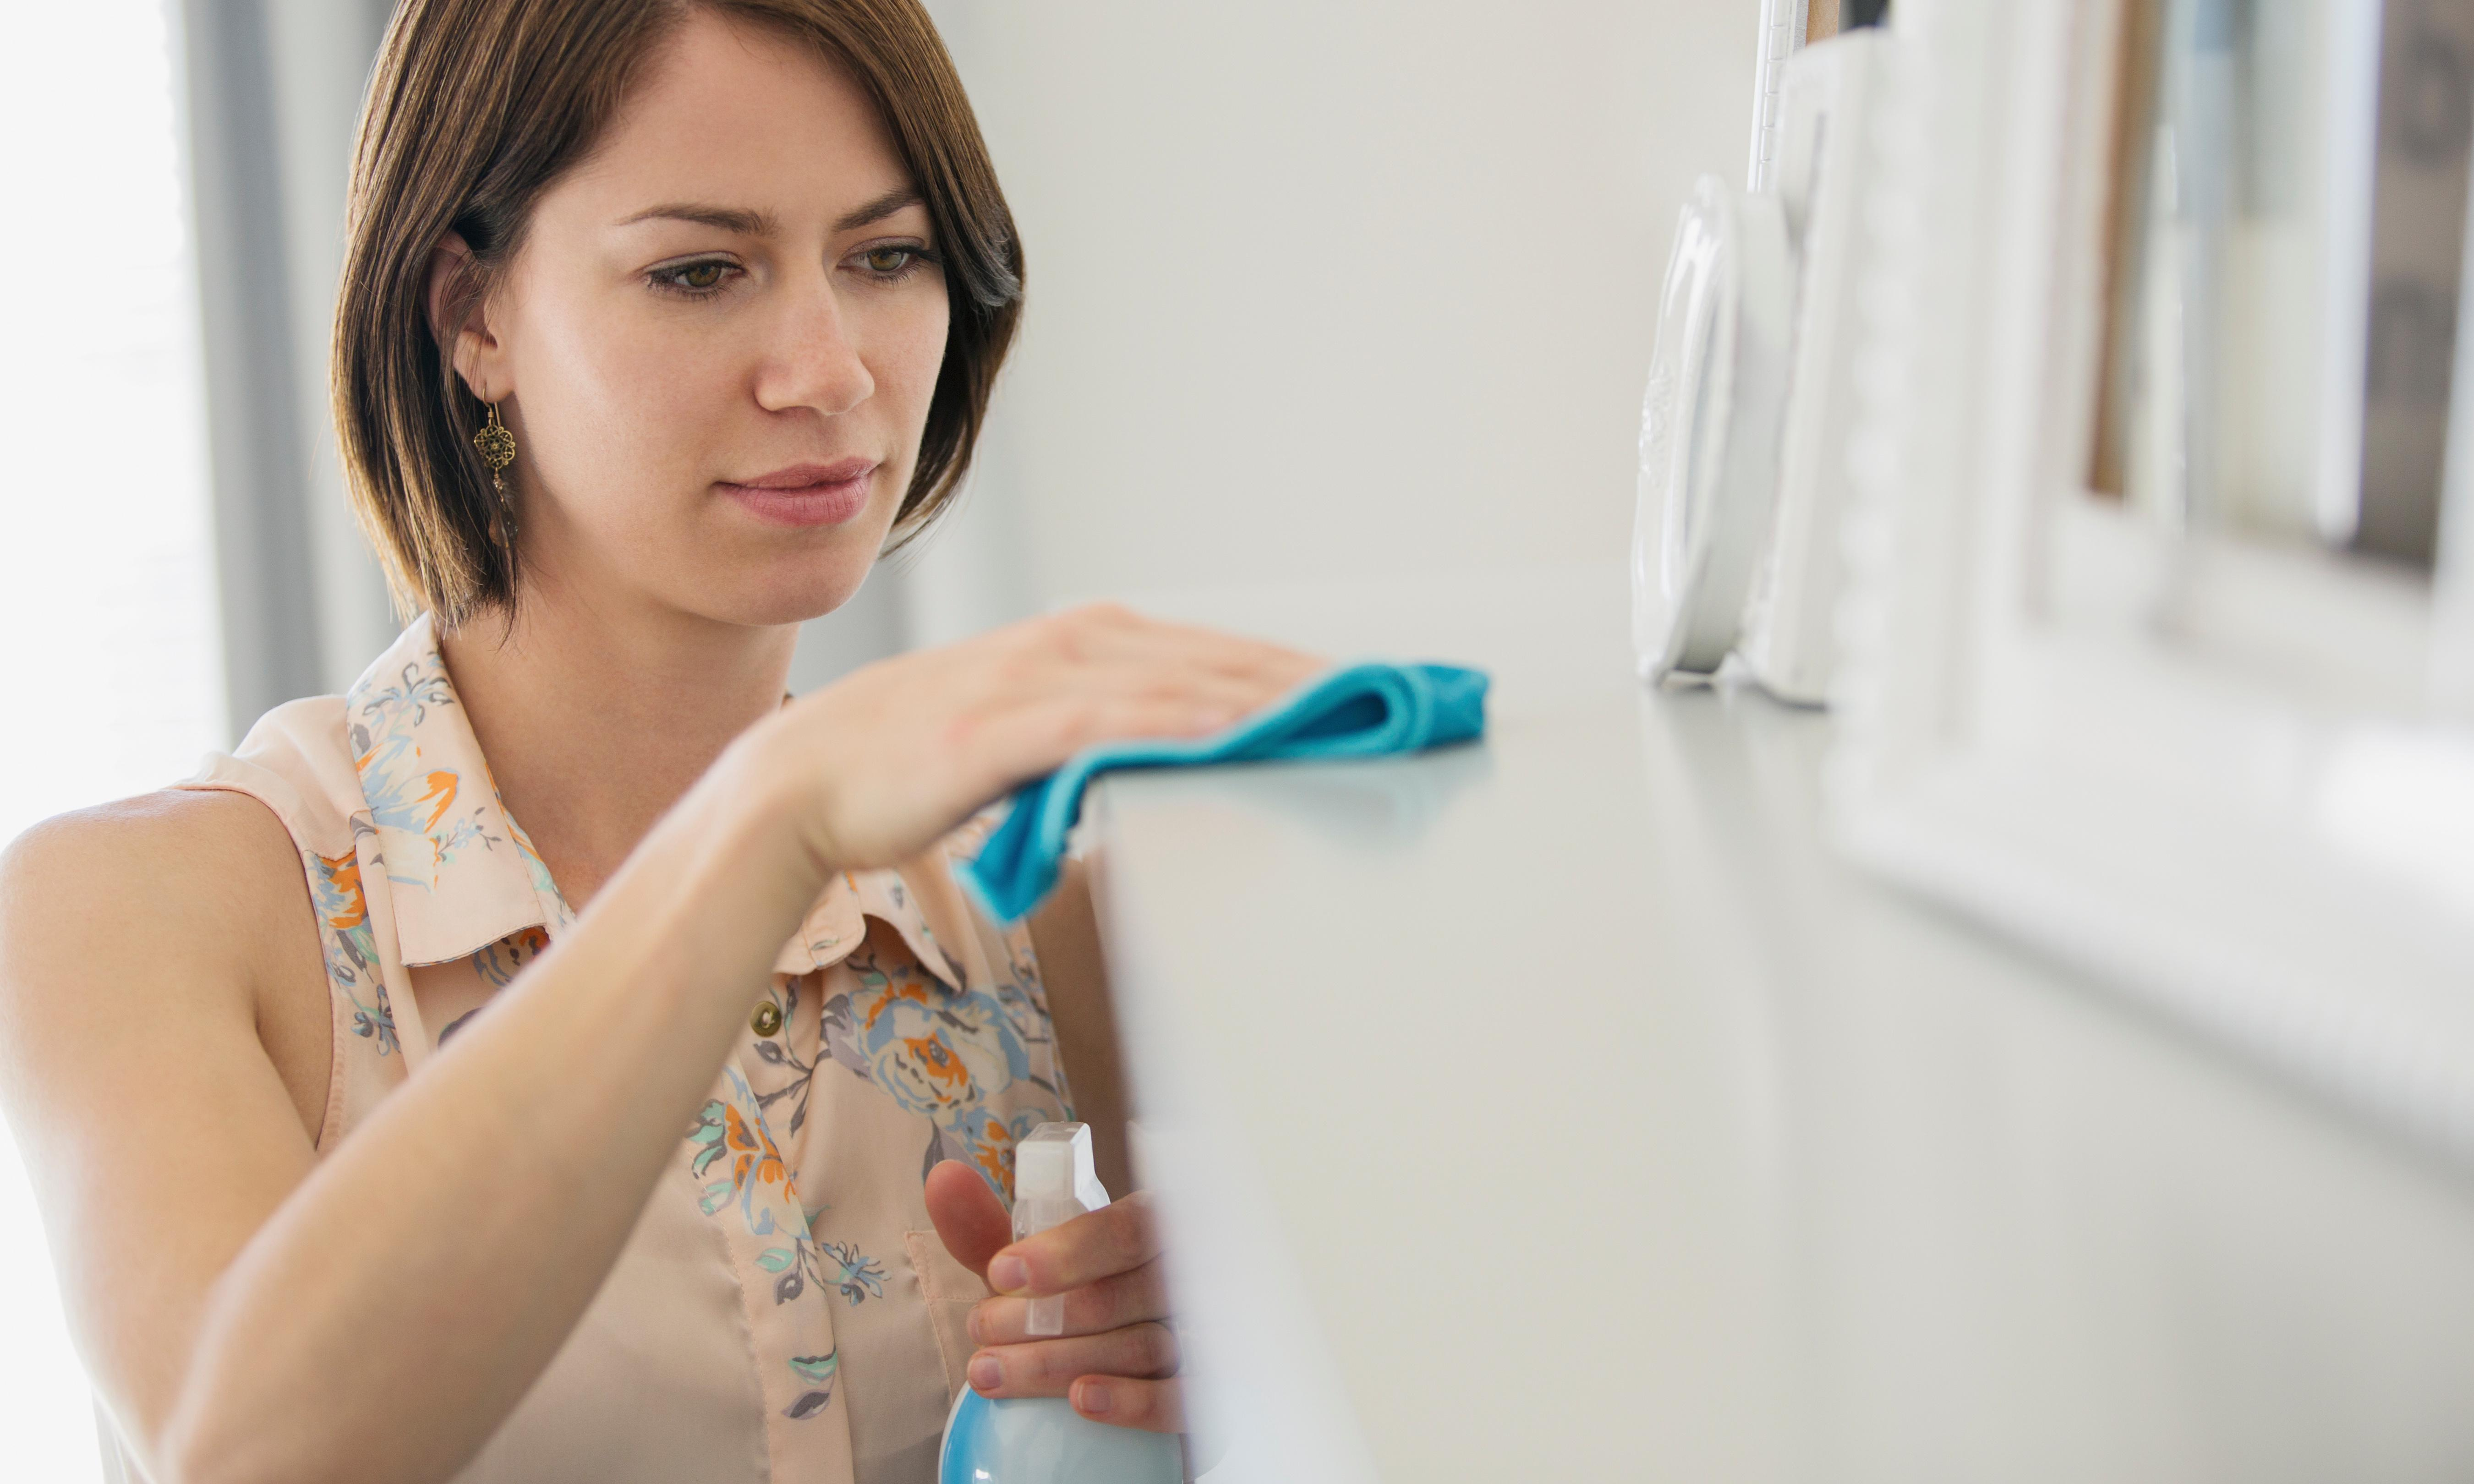 Five ways to make your home less toxic